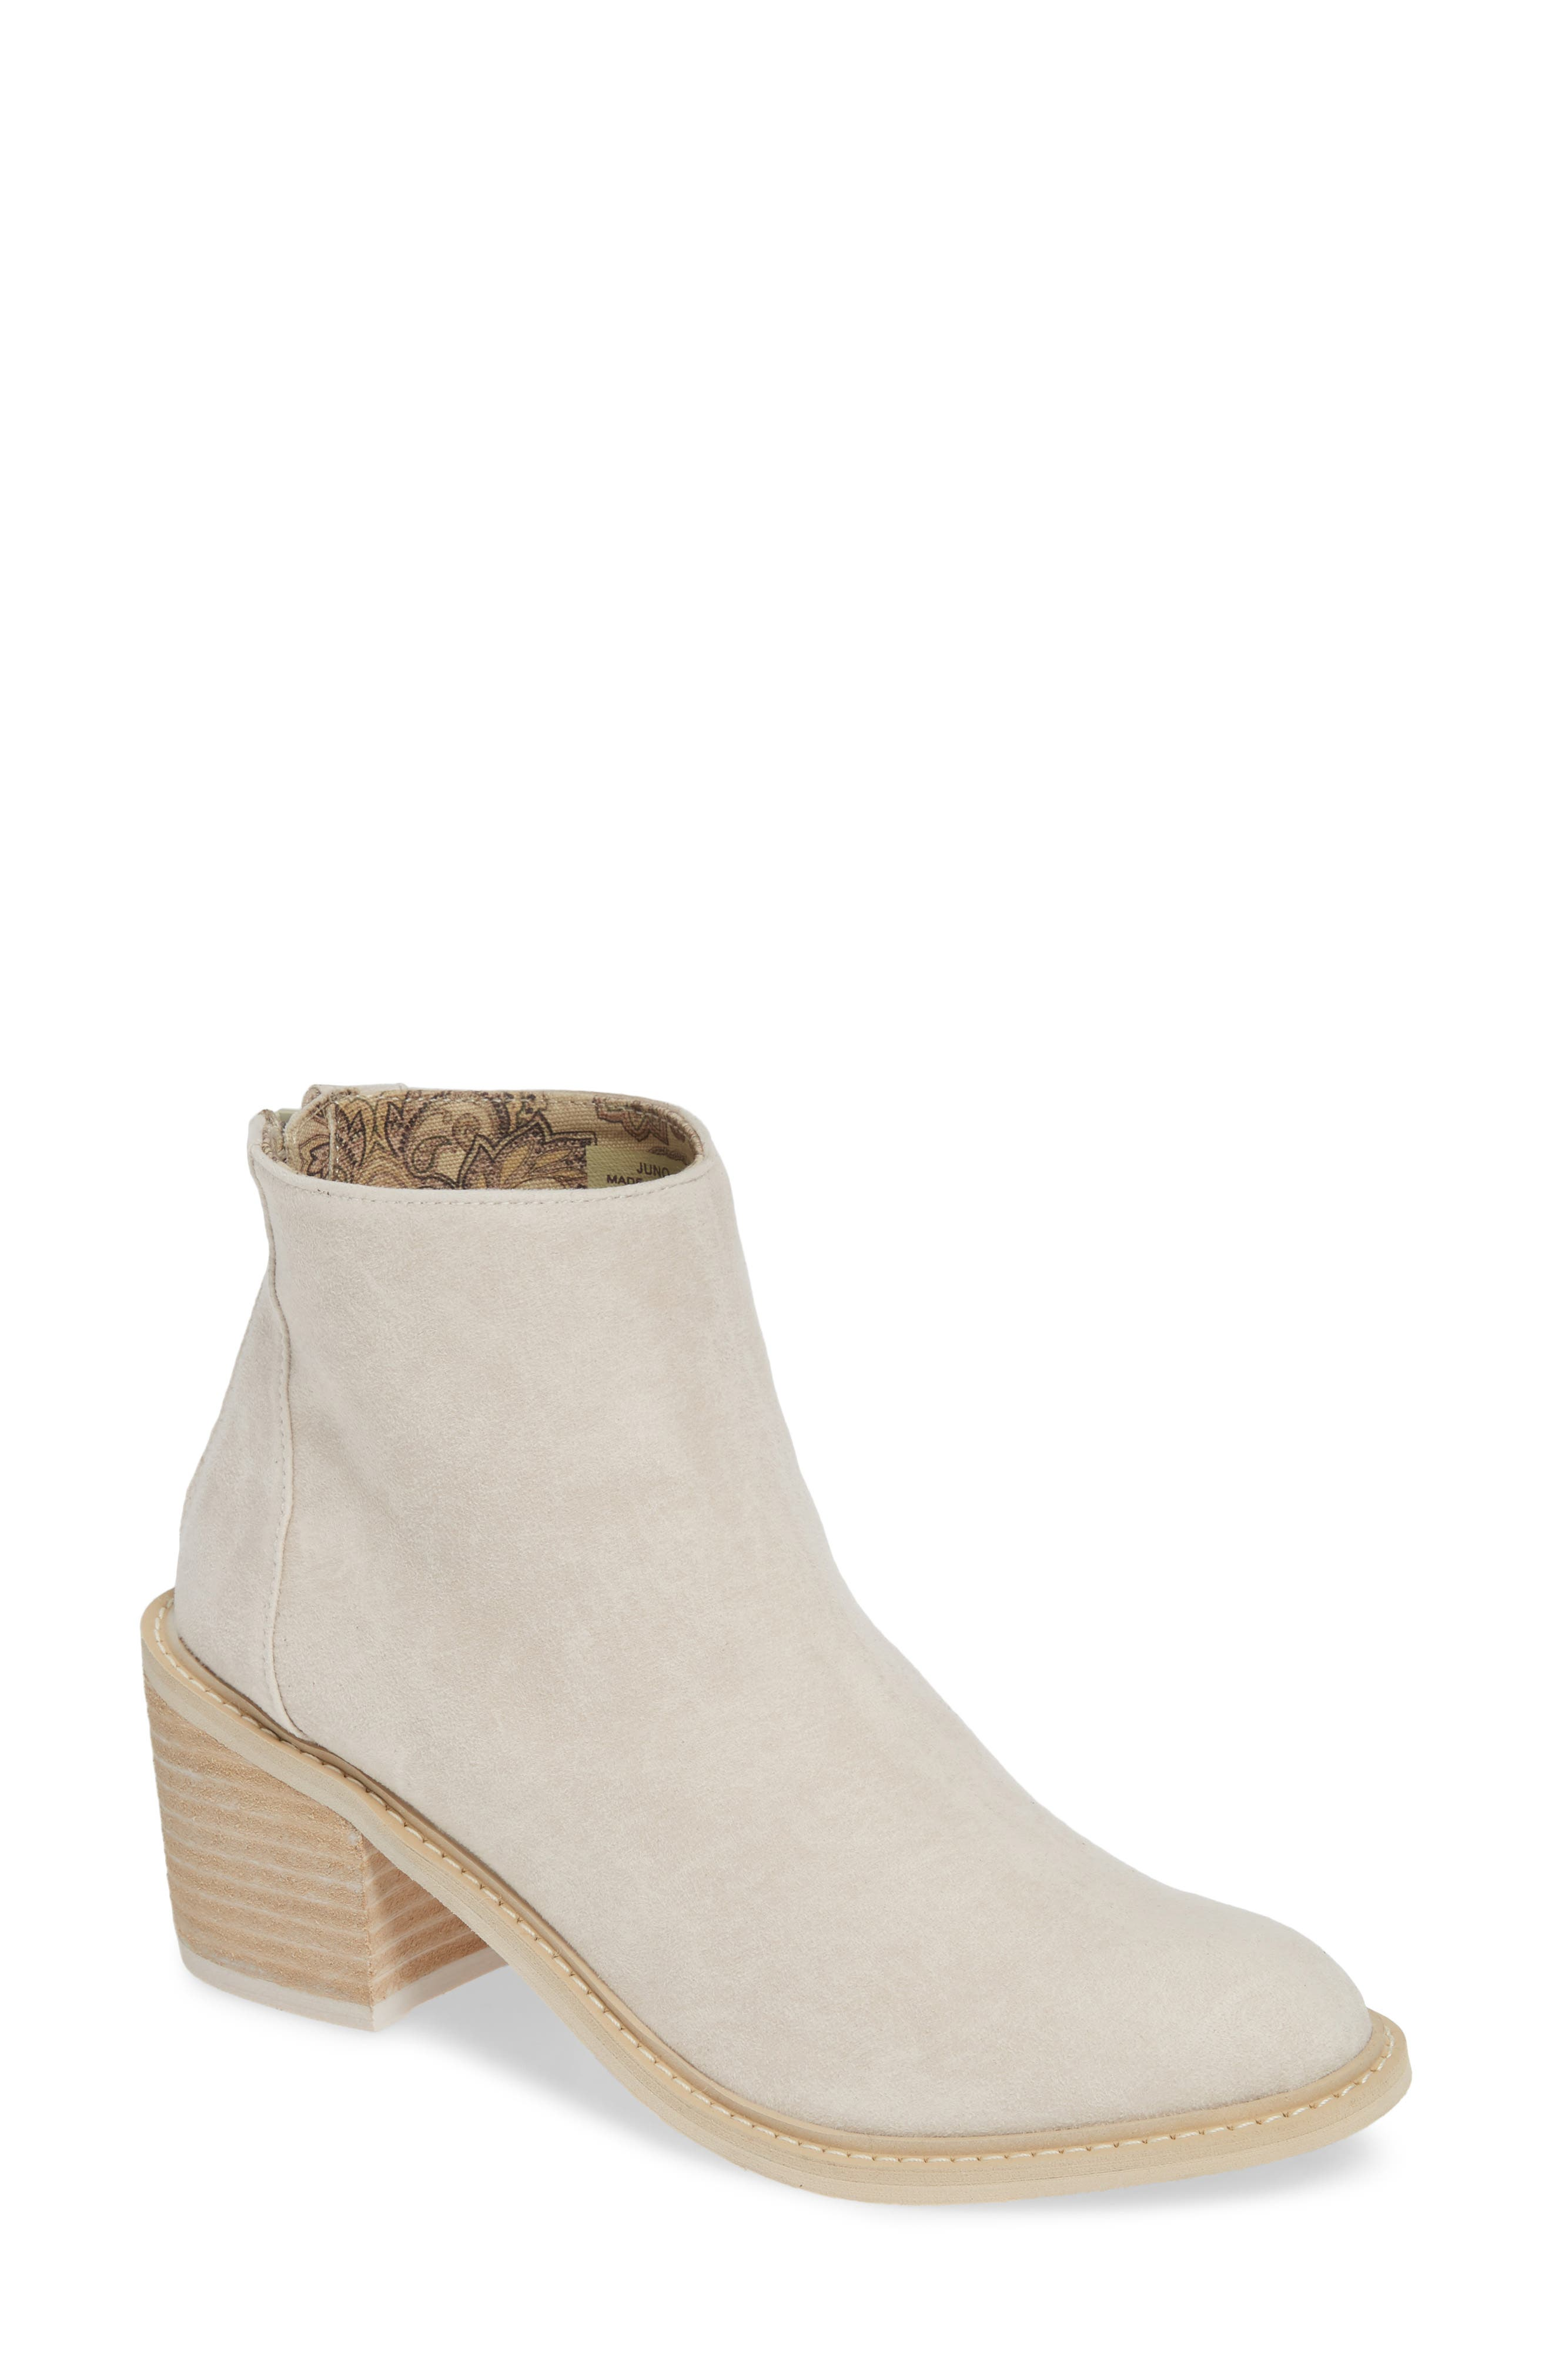 Band Of Gypsies Juno Bootie- Ivory